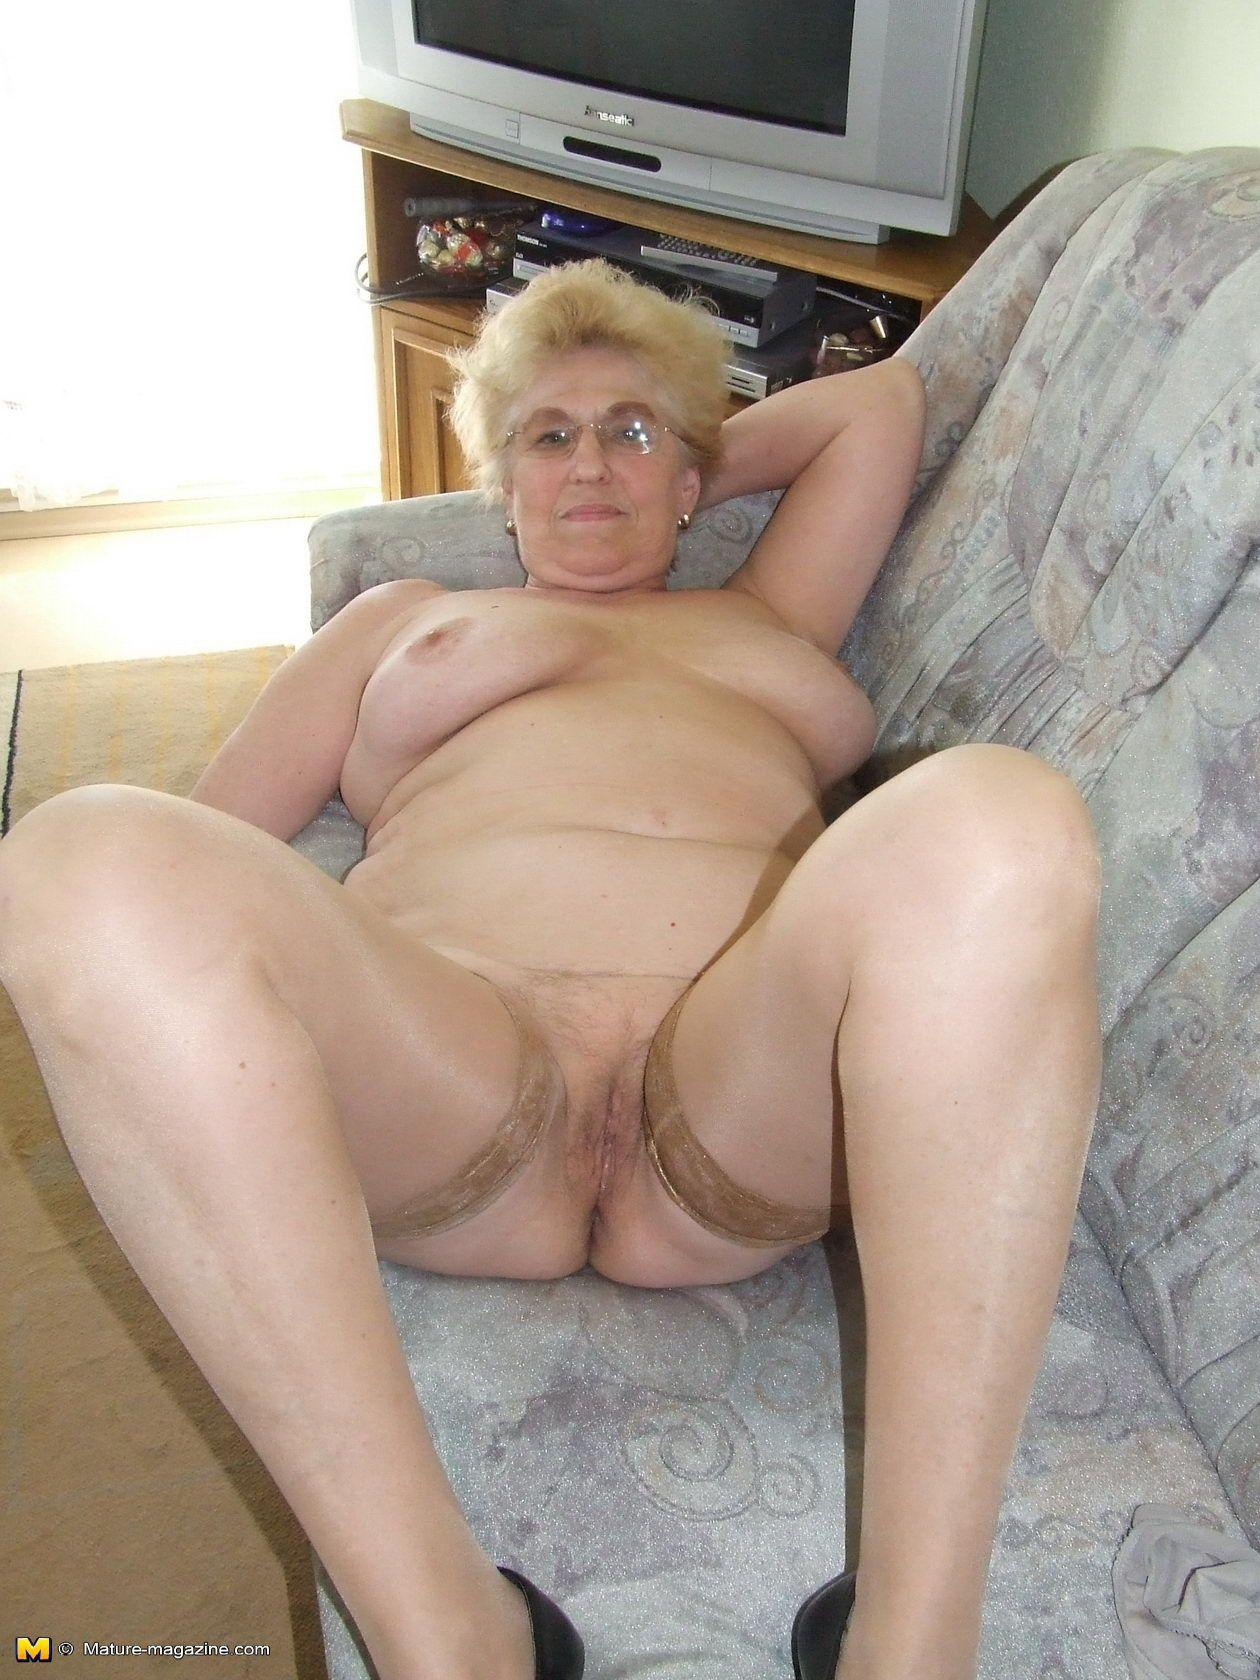 best of Amateur Xxx very old